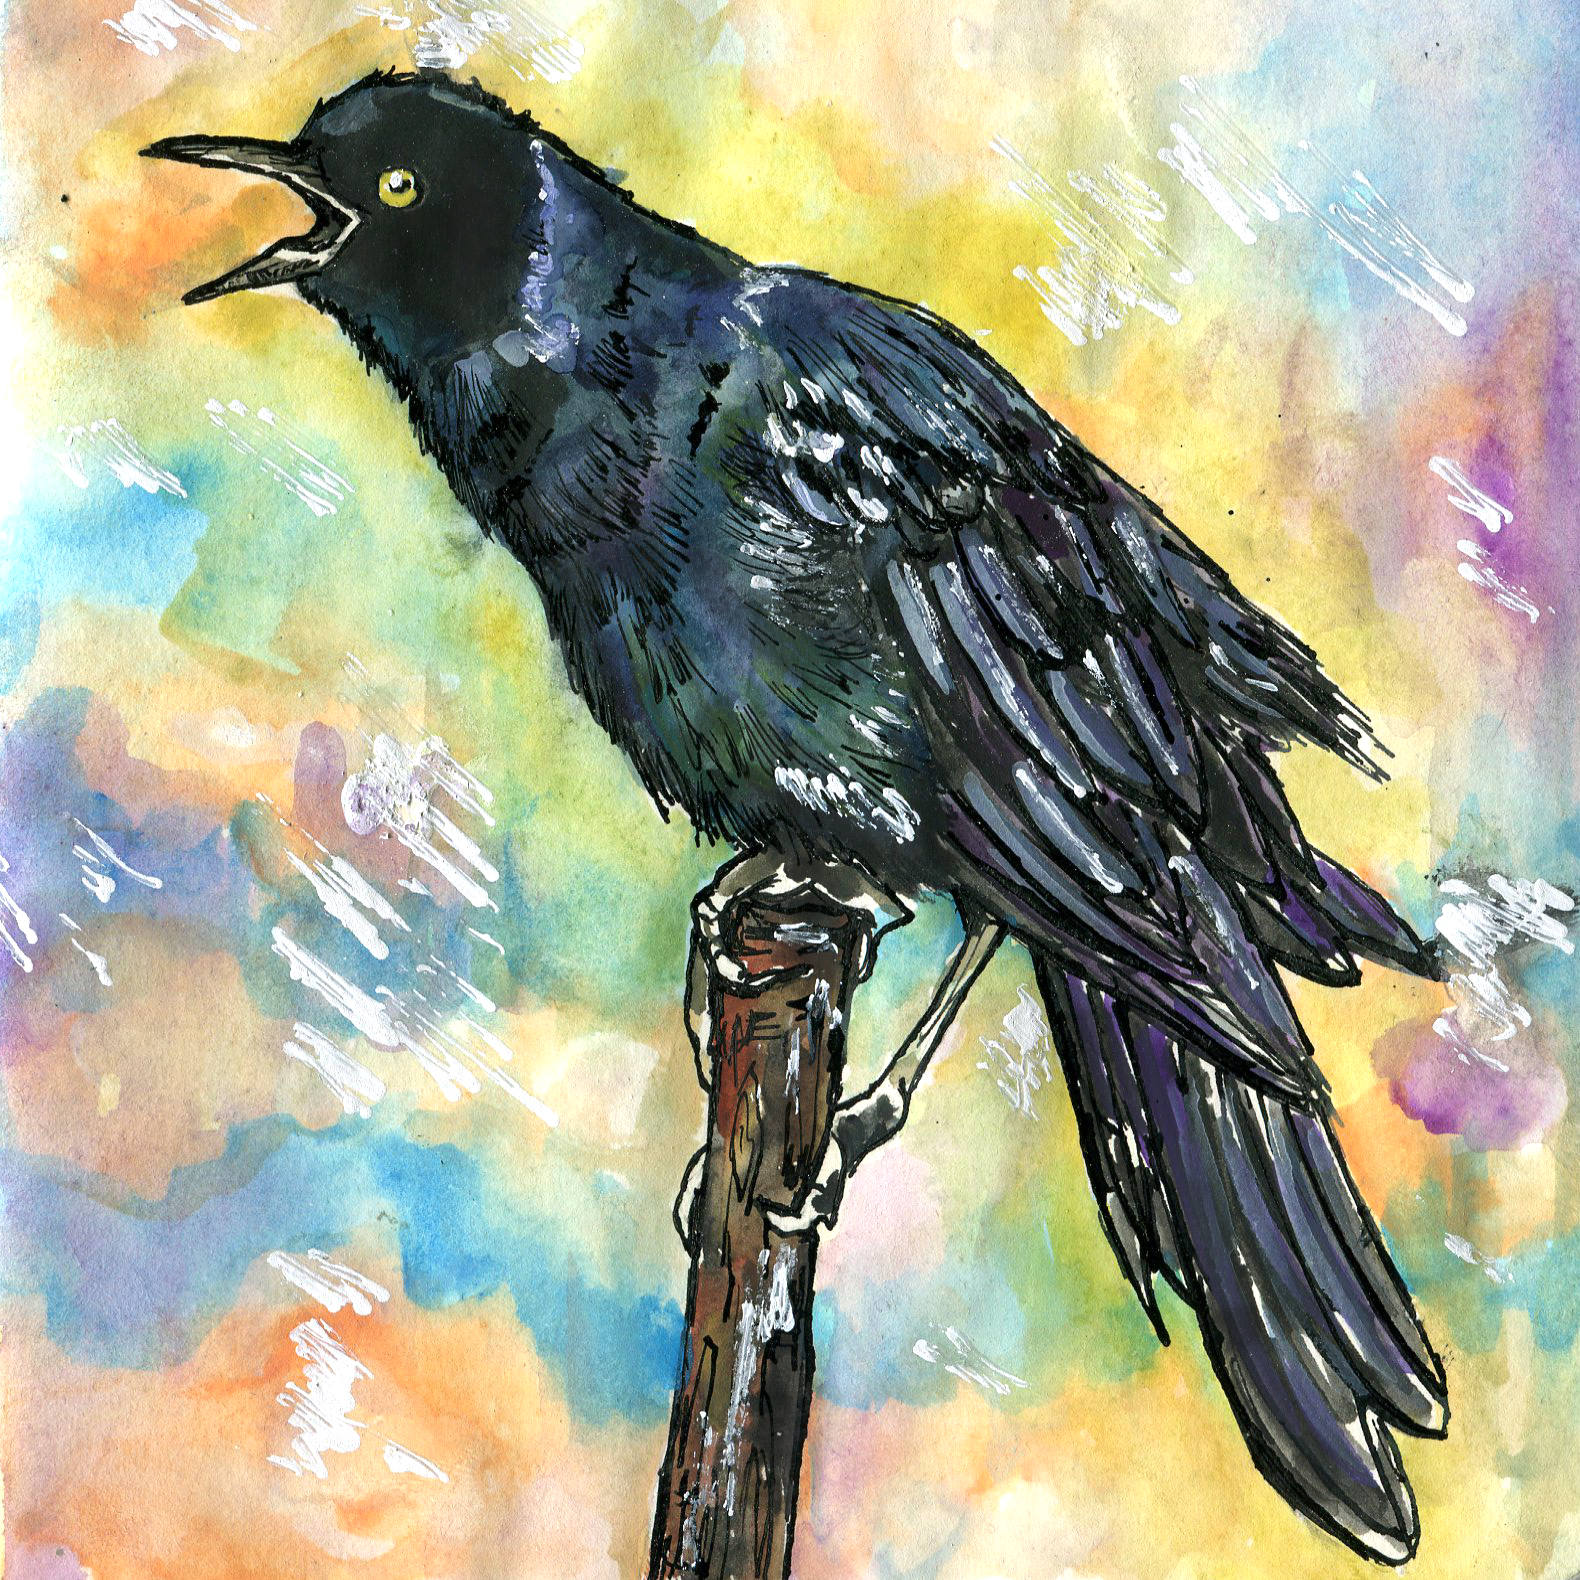 250. Boat-tailed Grackle